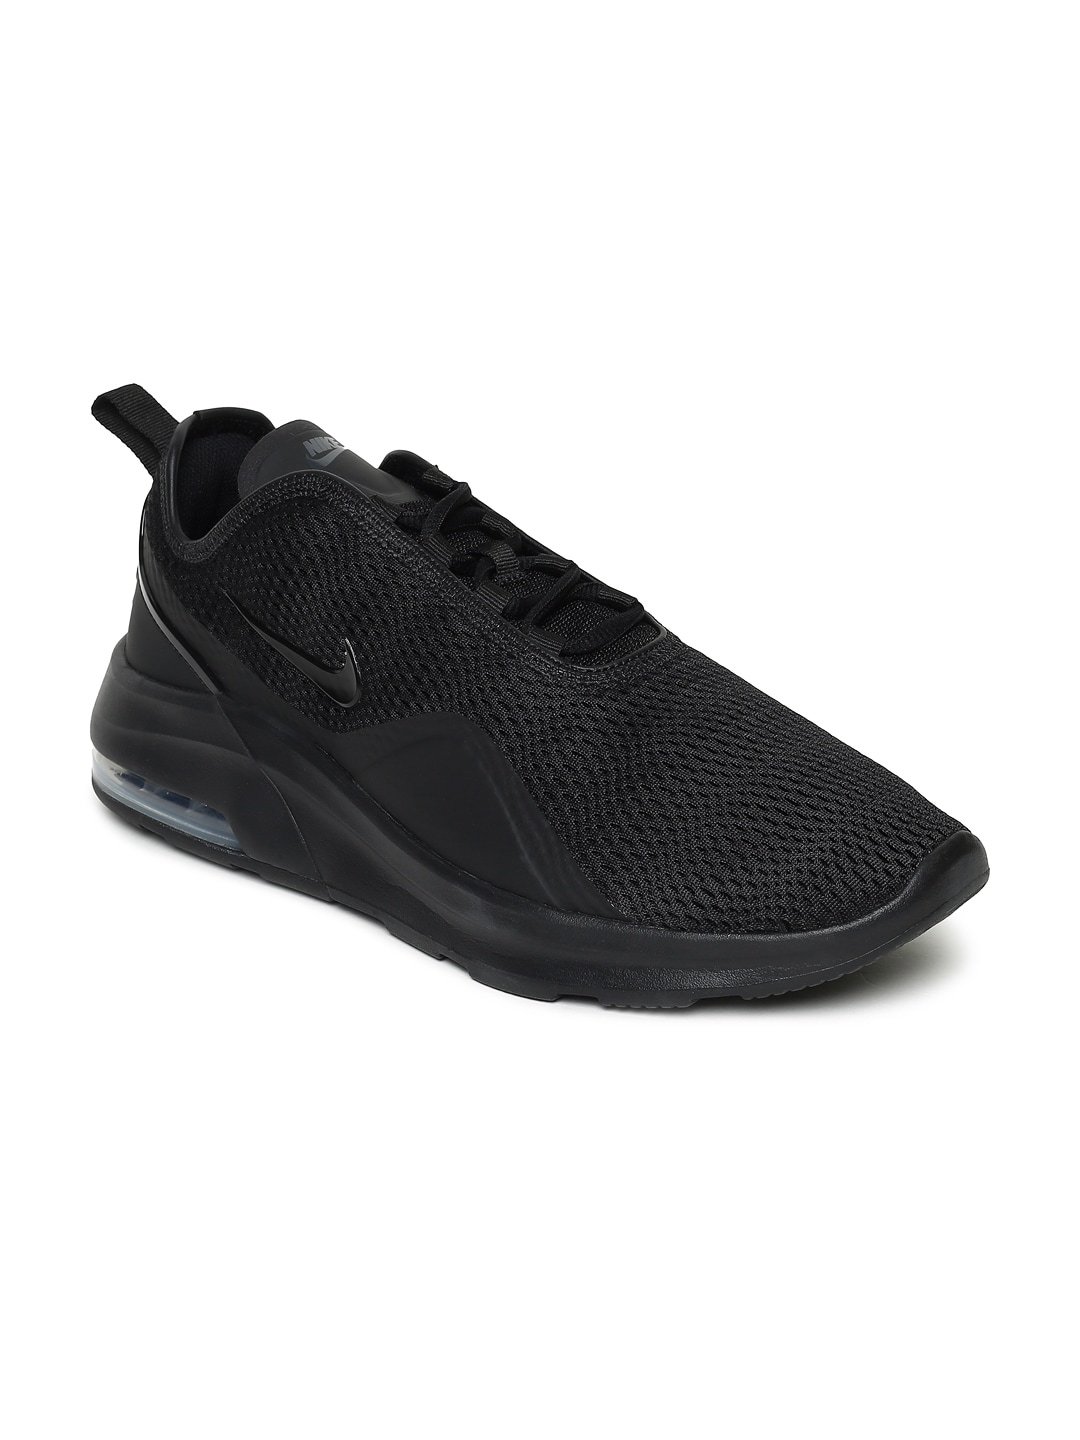 detailed look dc1e9 850c7 Nike Casual Shoes   Buy Nike Casual Shoes for Men   Women Online in India